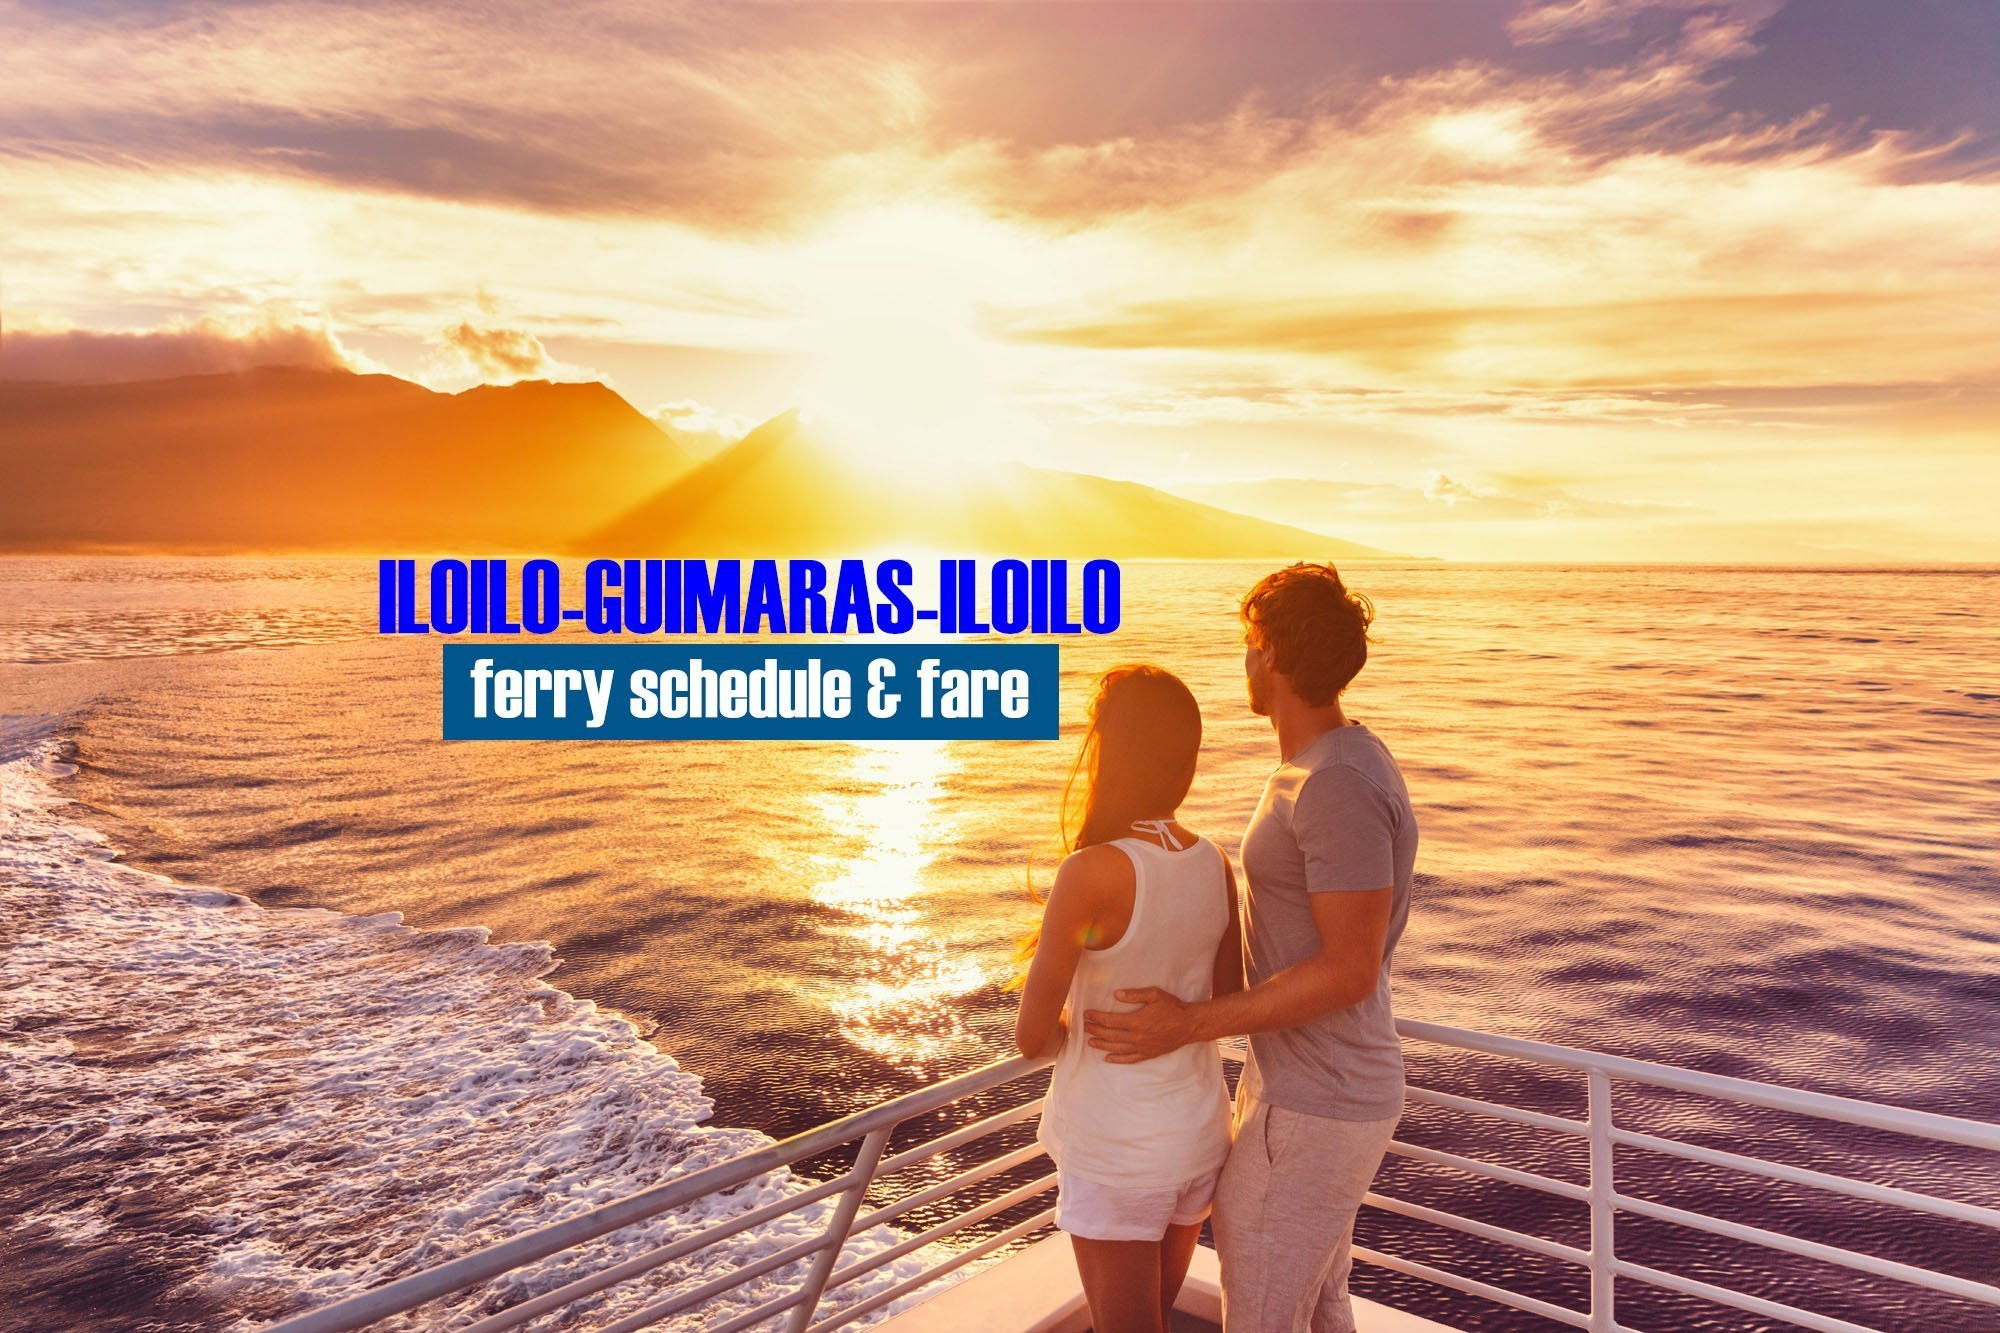 Iloilo to Guimaras: 2020 Ferry Schedule and Fare Rates